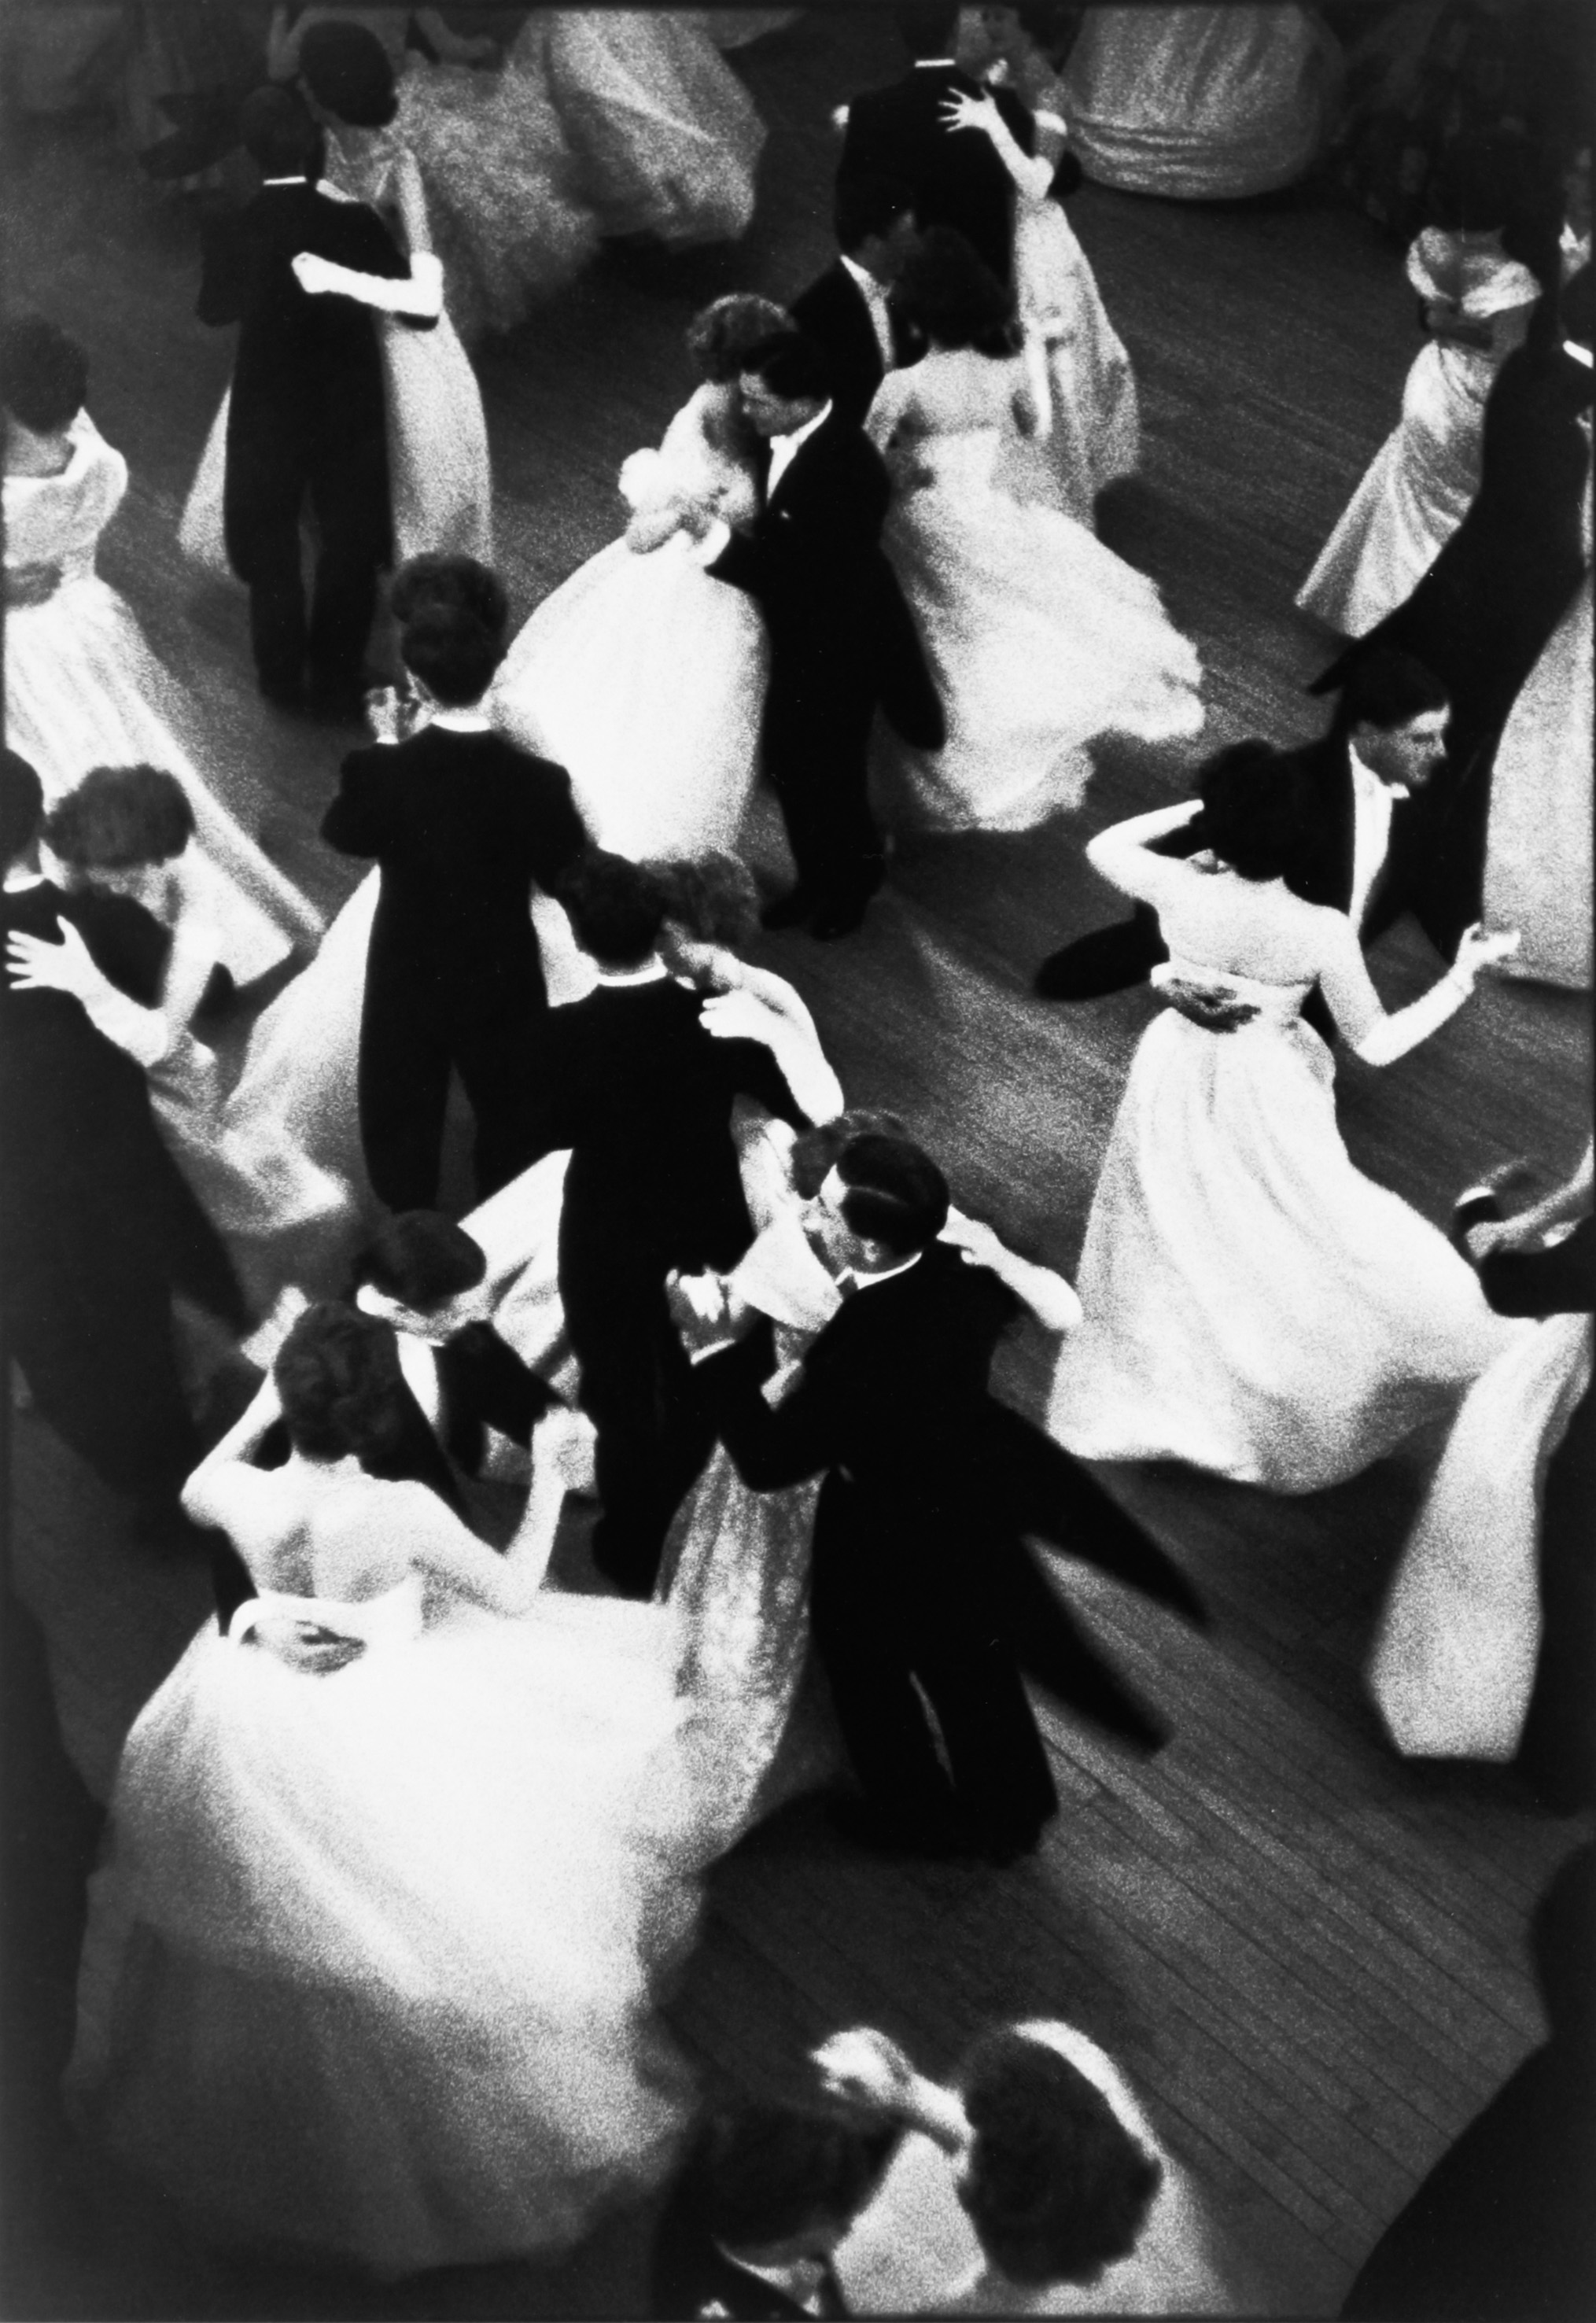 Strip Clubs: An Unforgettable Night Out cartier-bresson-queen-charlottes-ball-london-1959